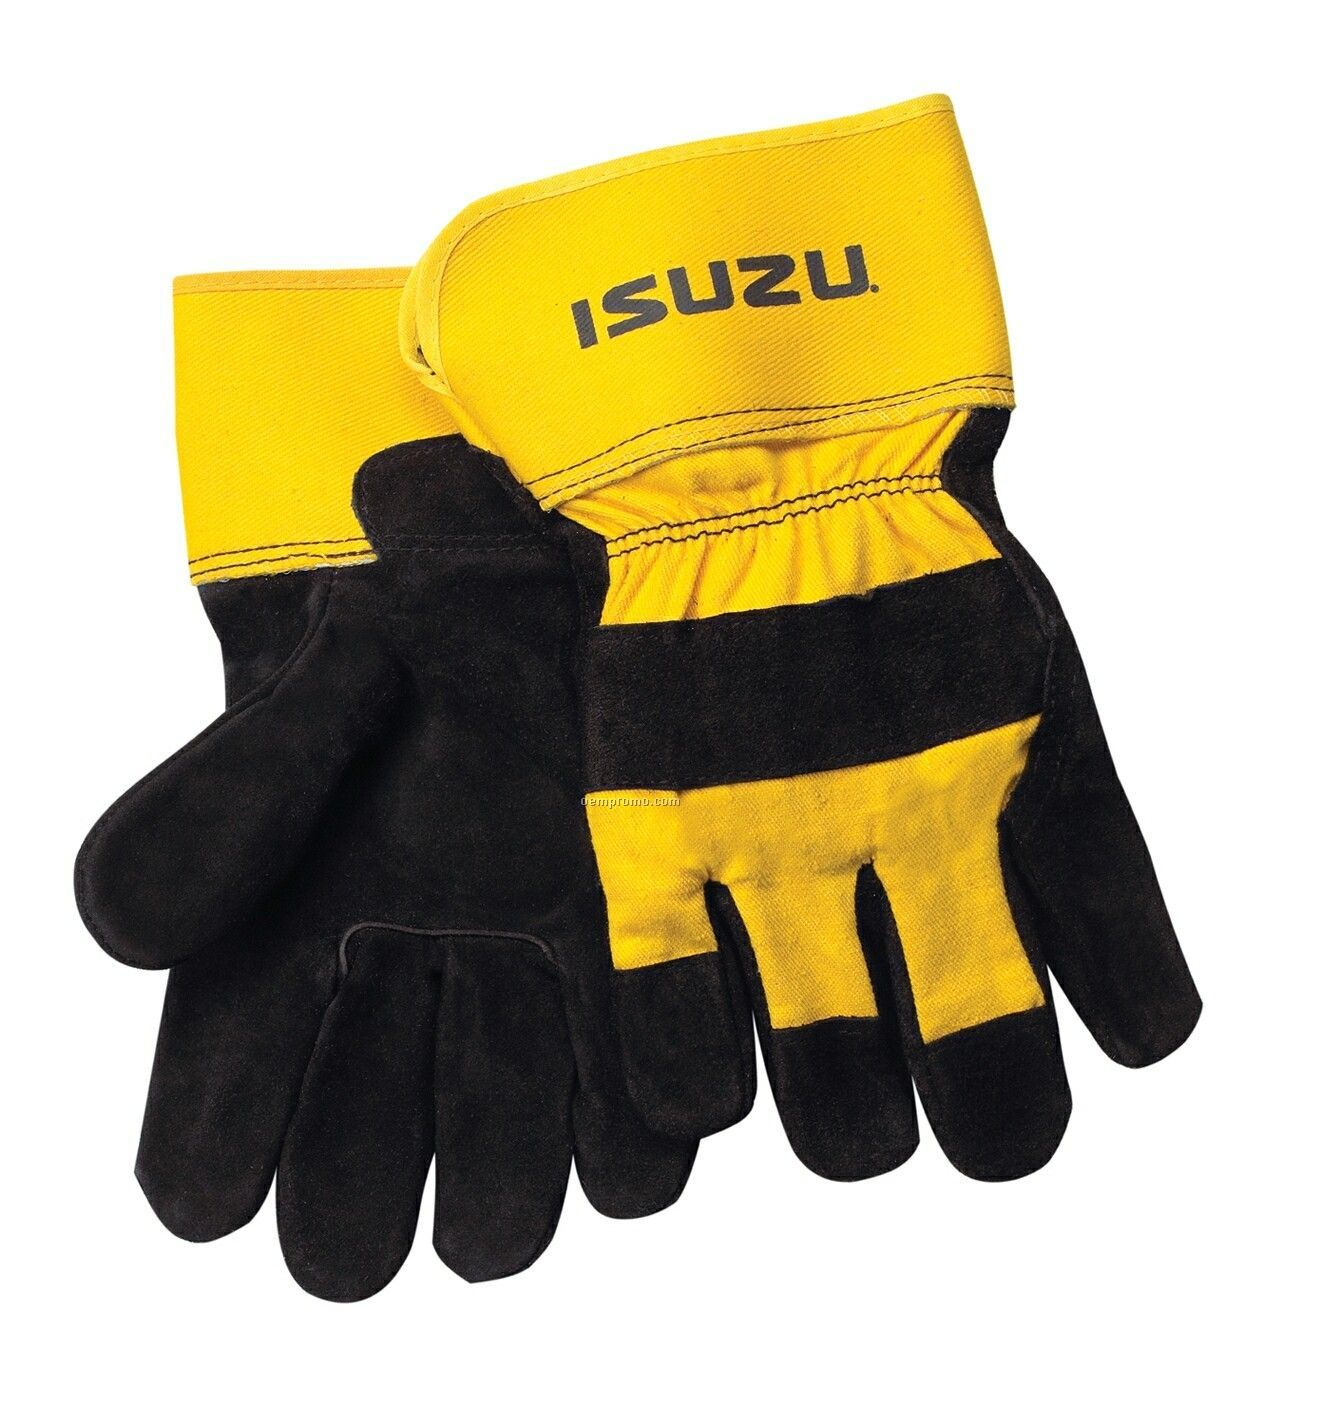 Winter Gloves / Promotional product fully customized  to your requirement UK Supplier